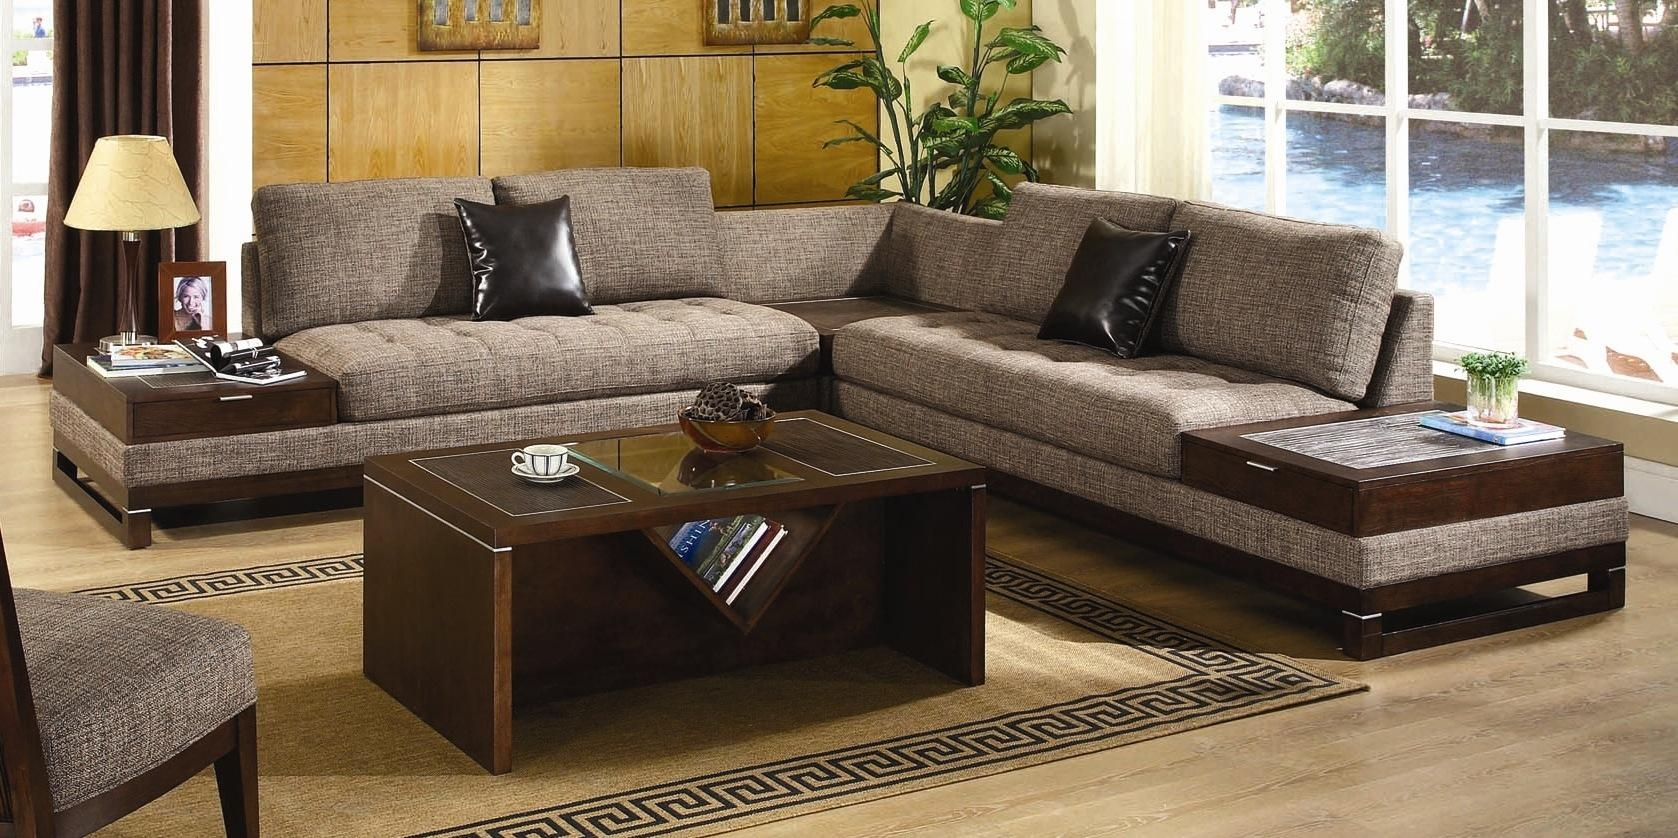 Sofa Furniture Discount Intended For Warm – Artdreamshome For Living Room Sofa Chairs (View 20 of 20)